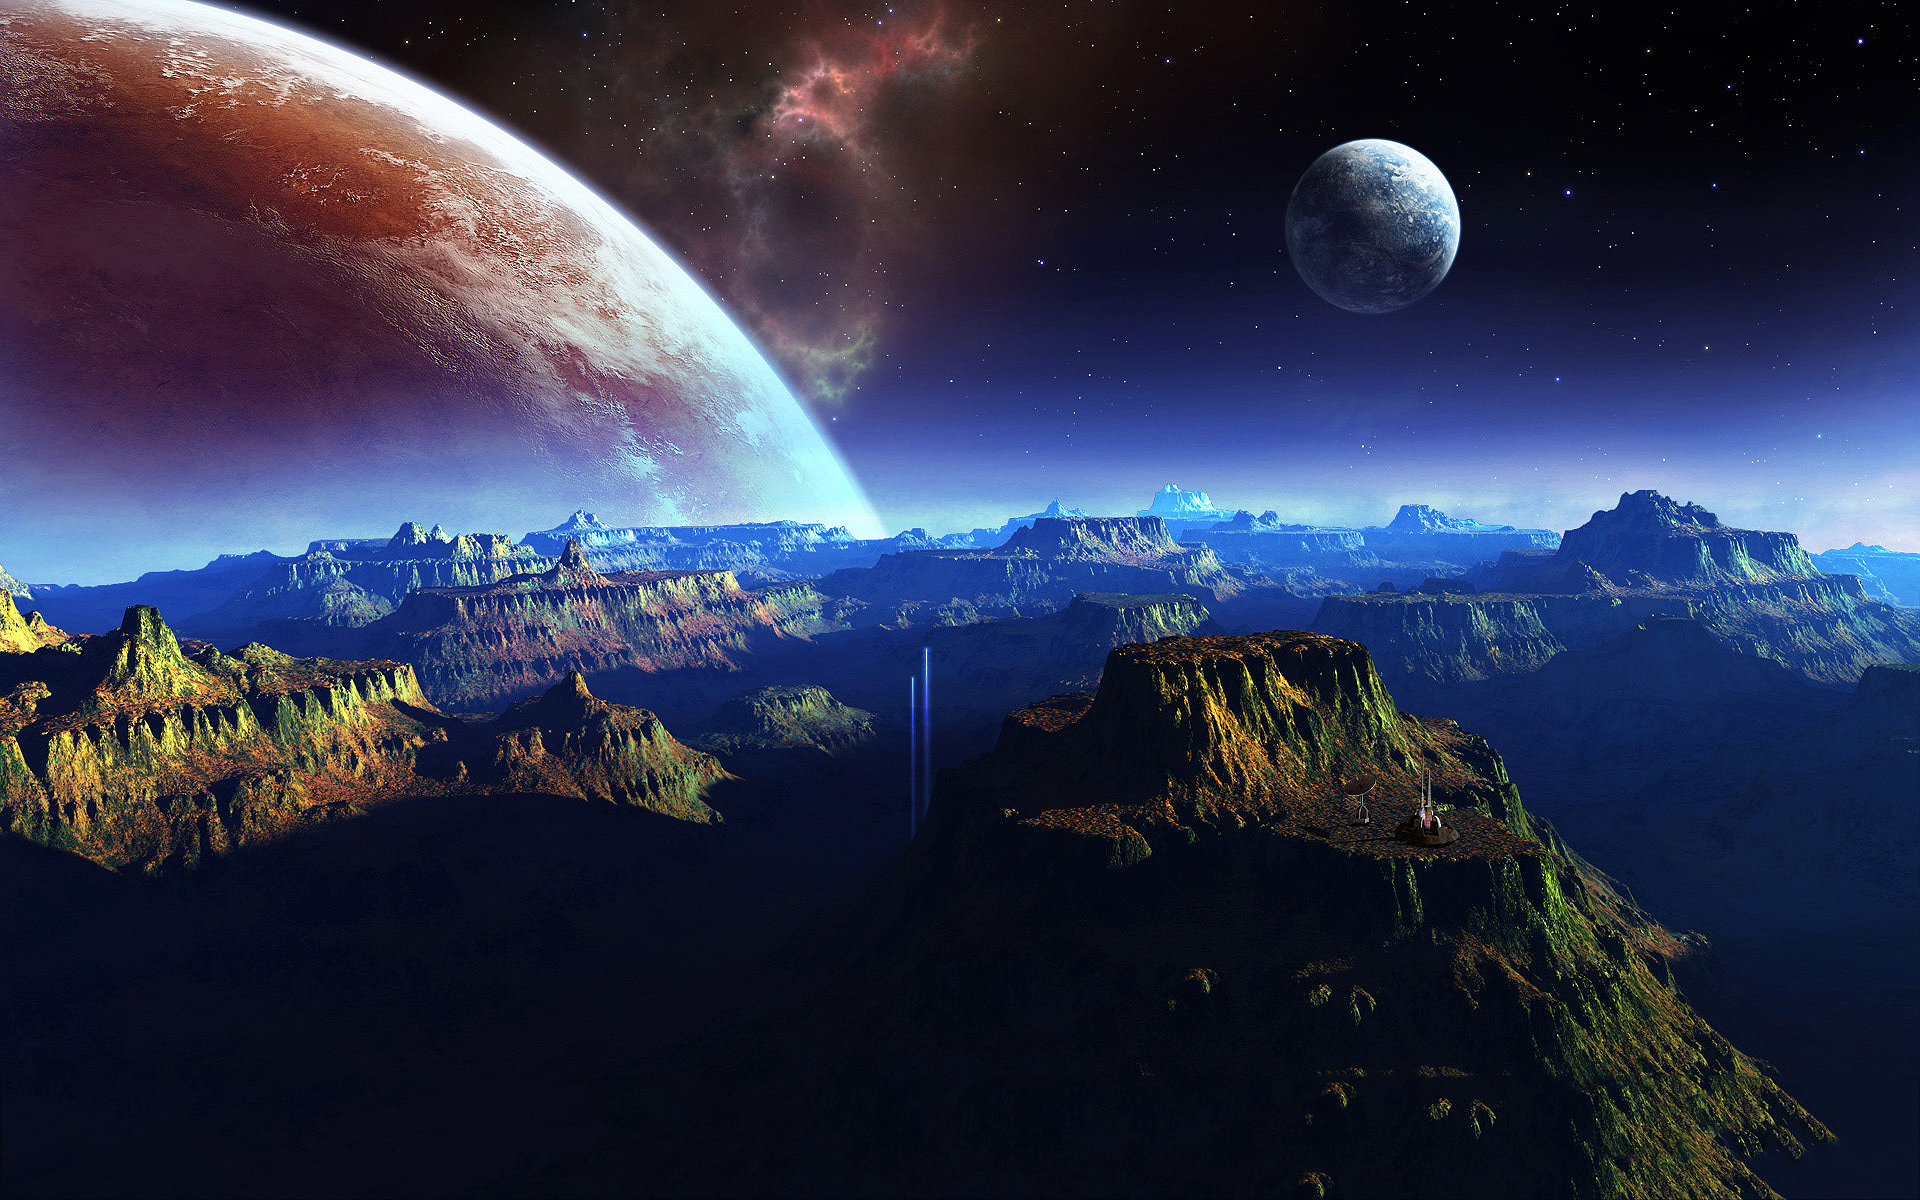 Fantasy planet space art